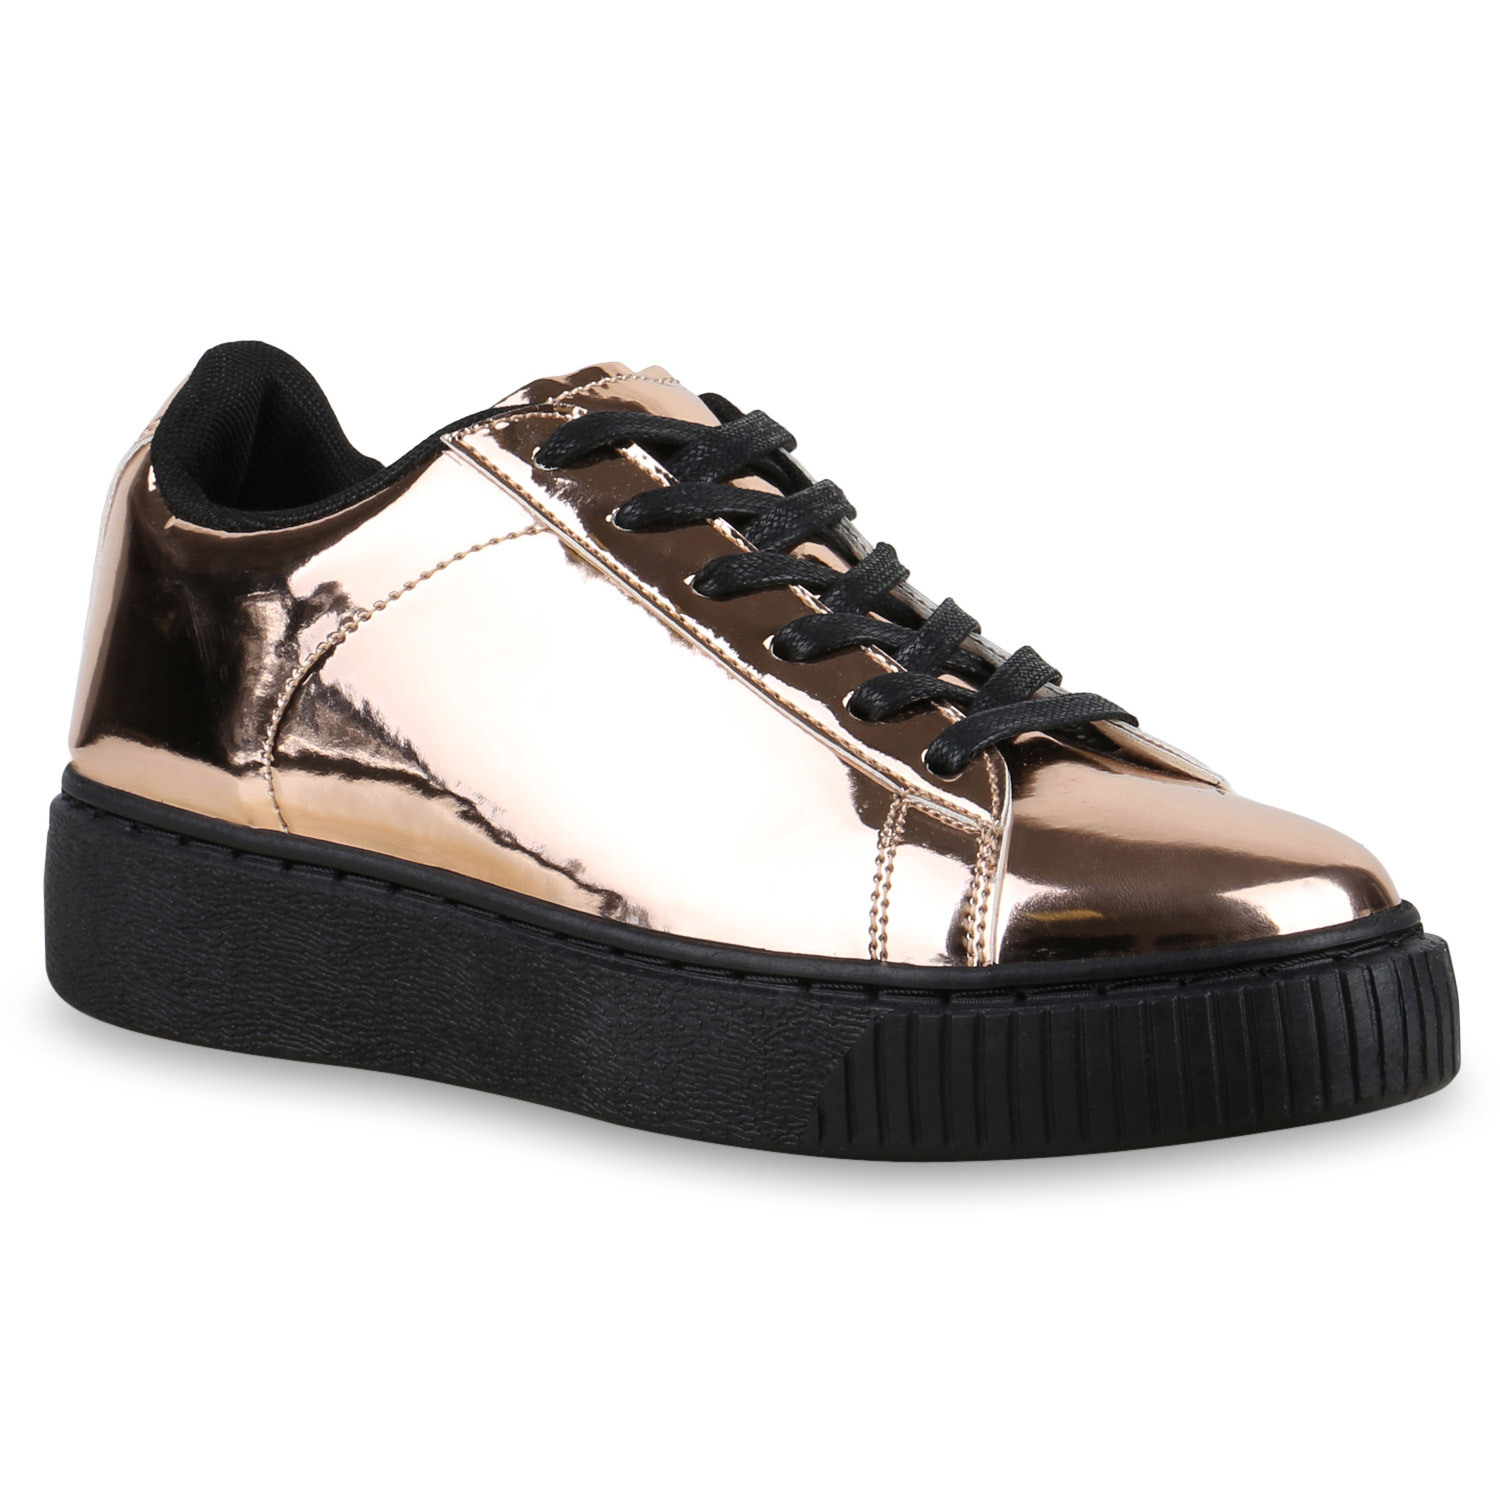 plateau sneaker damen lack turnschuhe metallic sneakers 815022 schuhe ebay. Black Bedroom Furniture Sets. Home Design Ideas